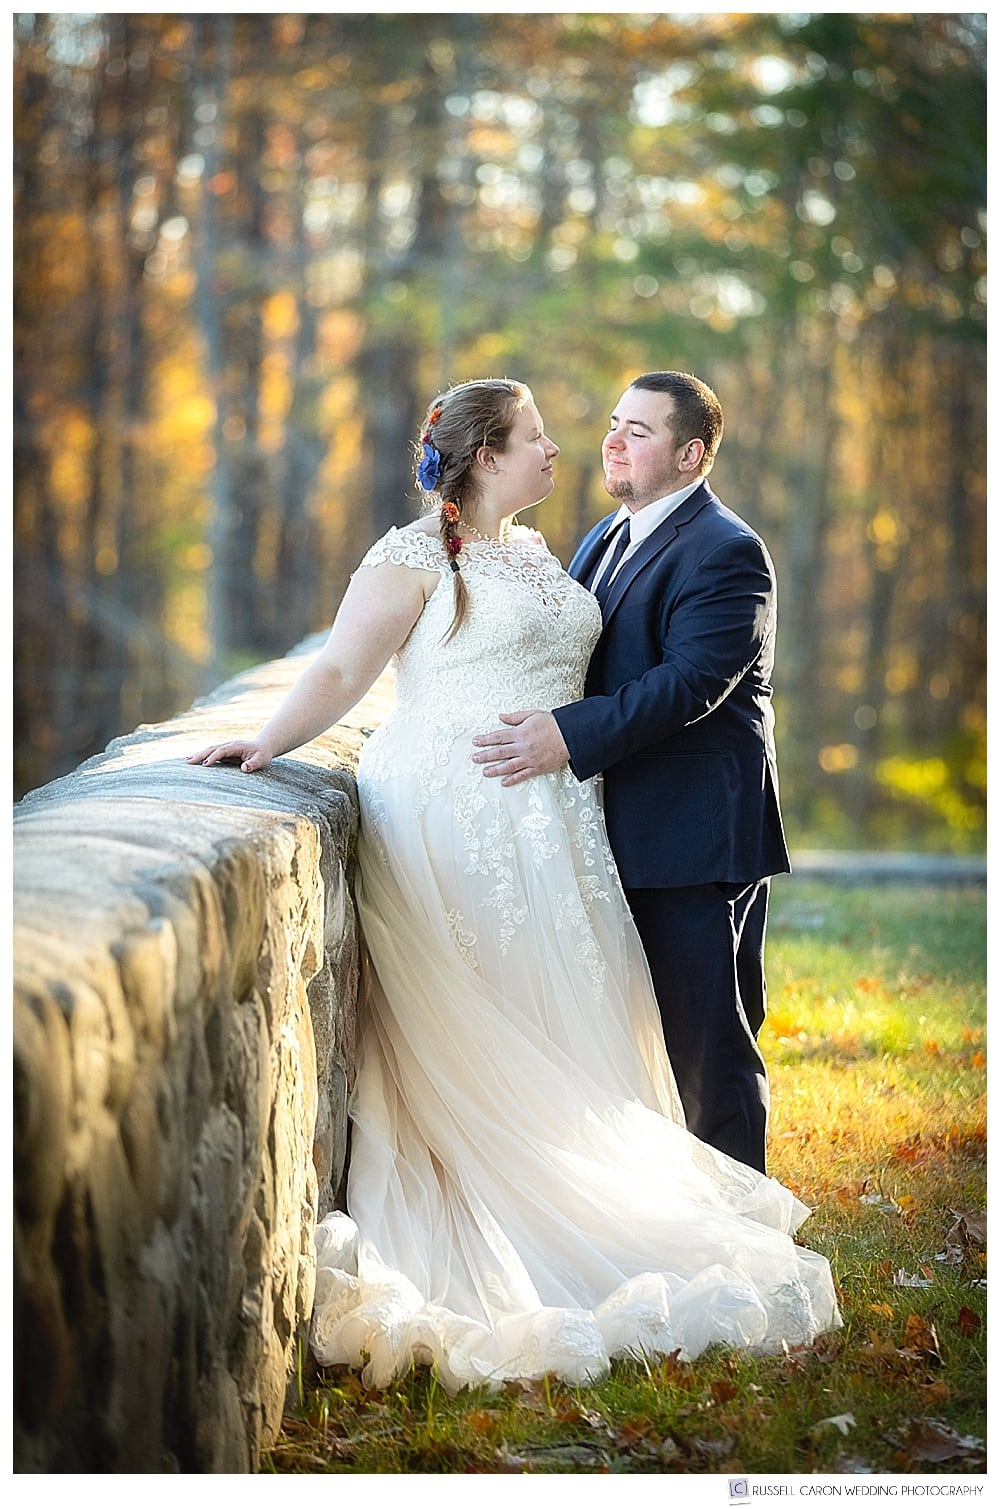 bride and groom standing at a stone wall in the fall foliage